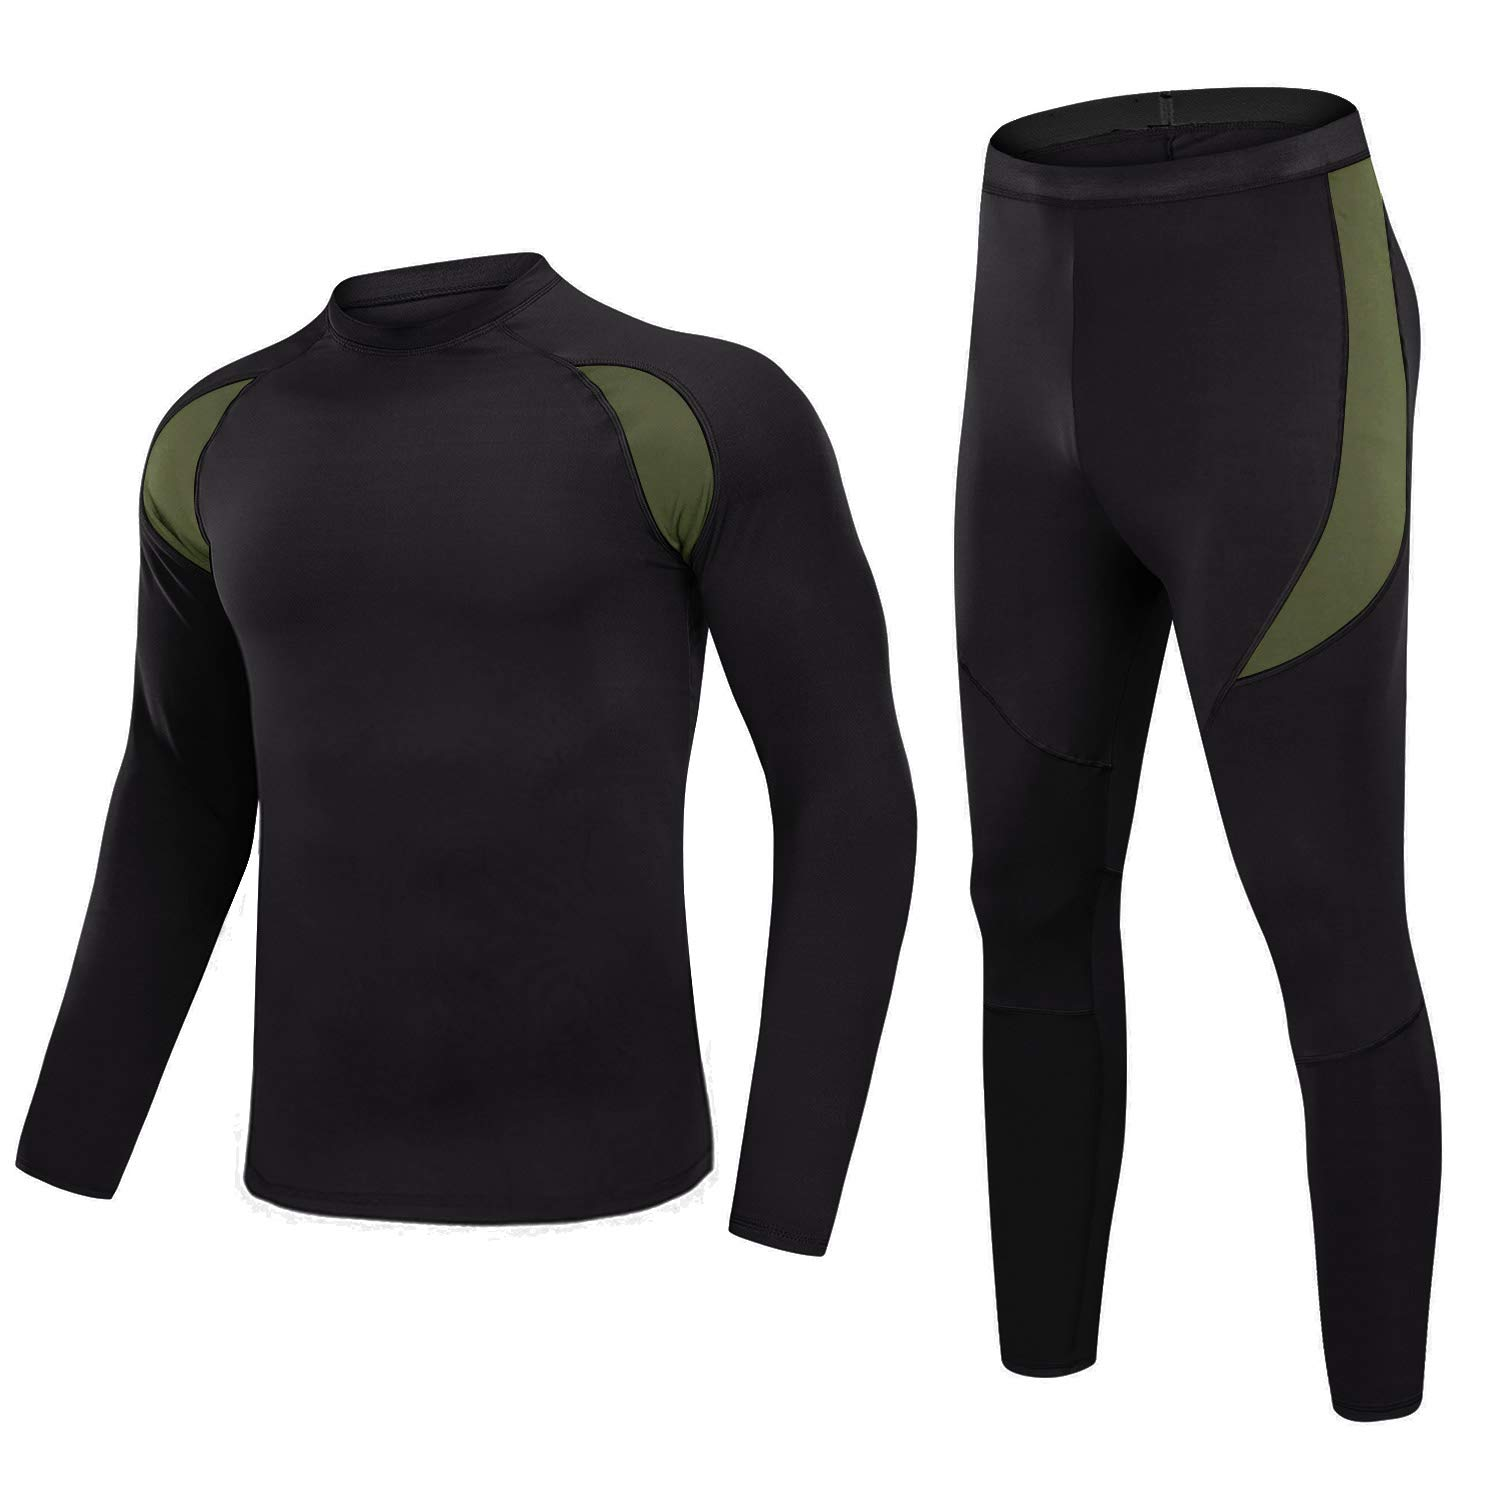 MAGNIVIT Men's Thermal Underwear for Men Base Layer Top & Bottom Set with Fleece Lined Black by MAGNIVIT